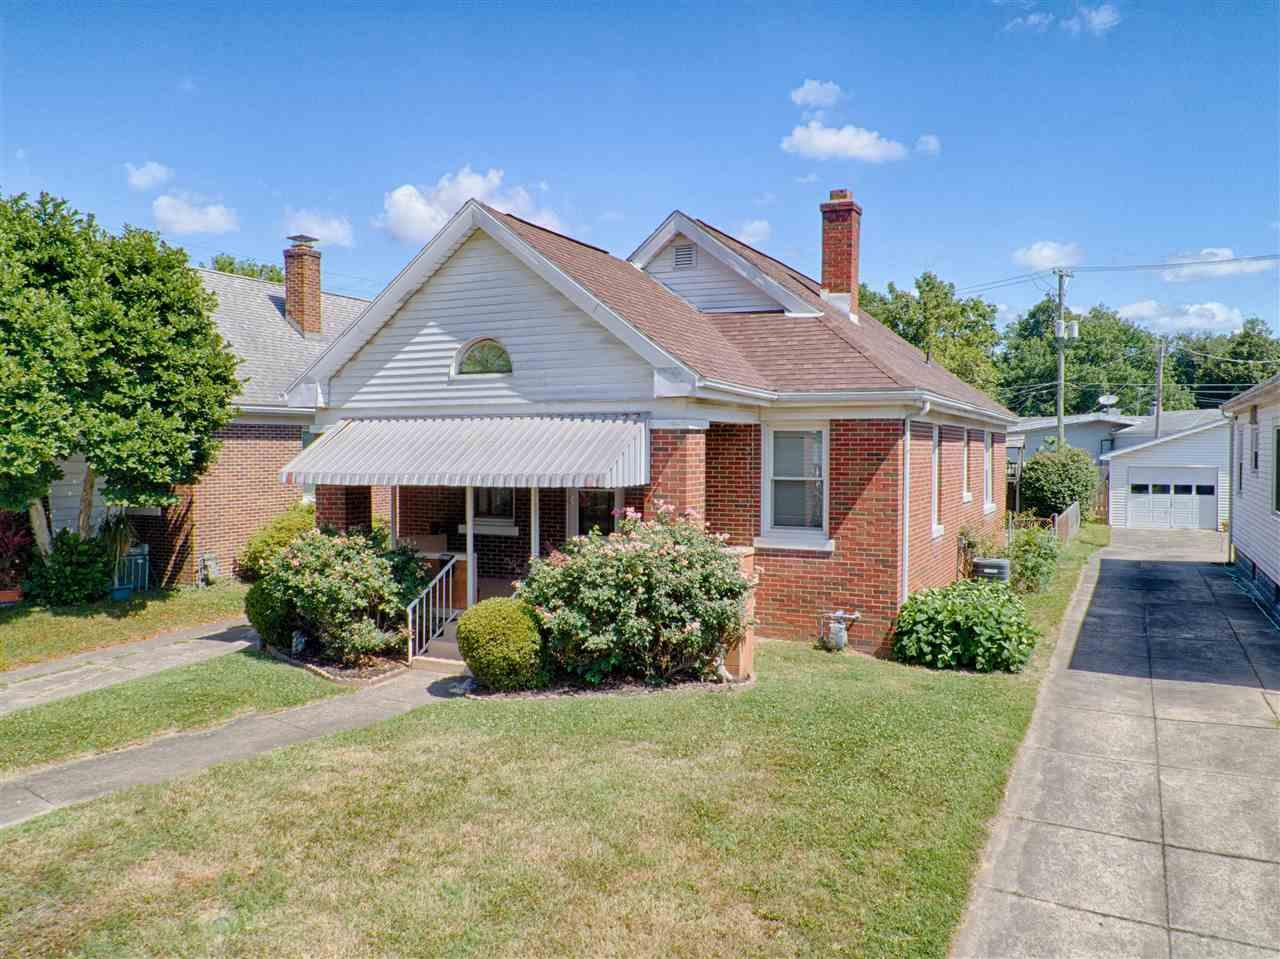 1702 E Mulberry, Evansville, IN 47714